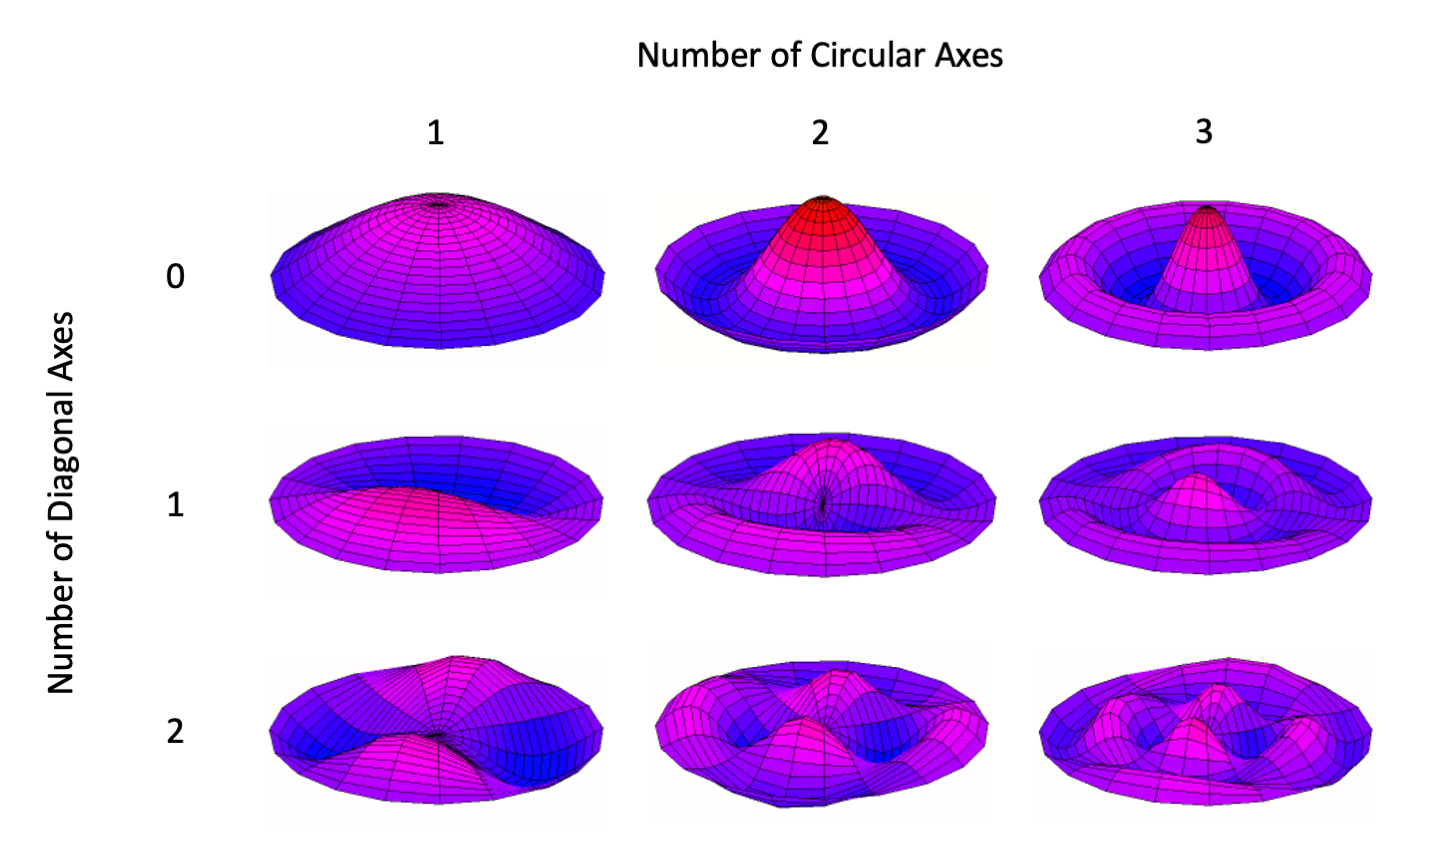 Figure 2.3. Drumhead vibration modes with different numbers of circular and diagonal axes